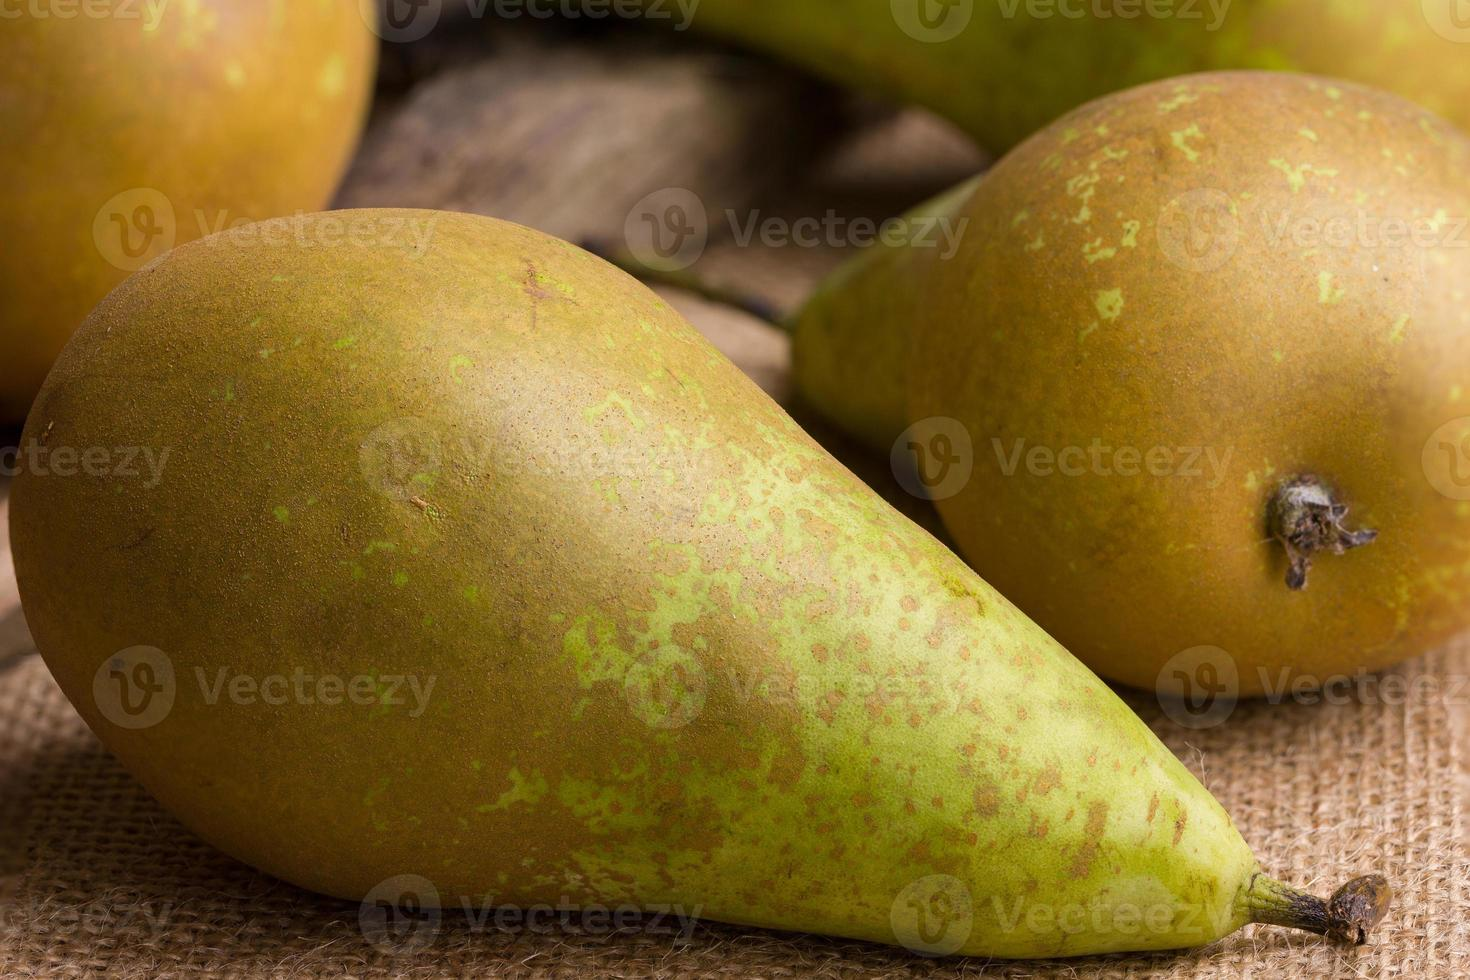 several pears conference on brown linen background - closeup photo